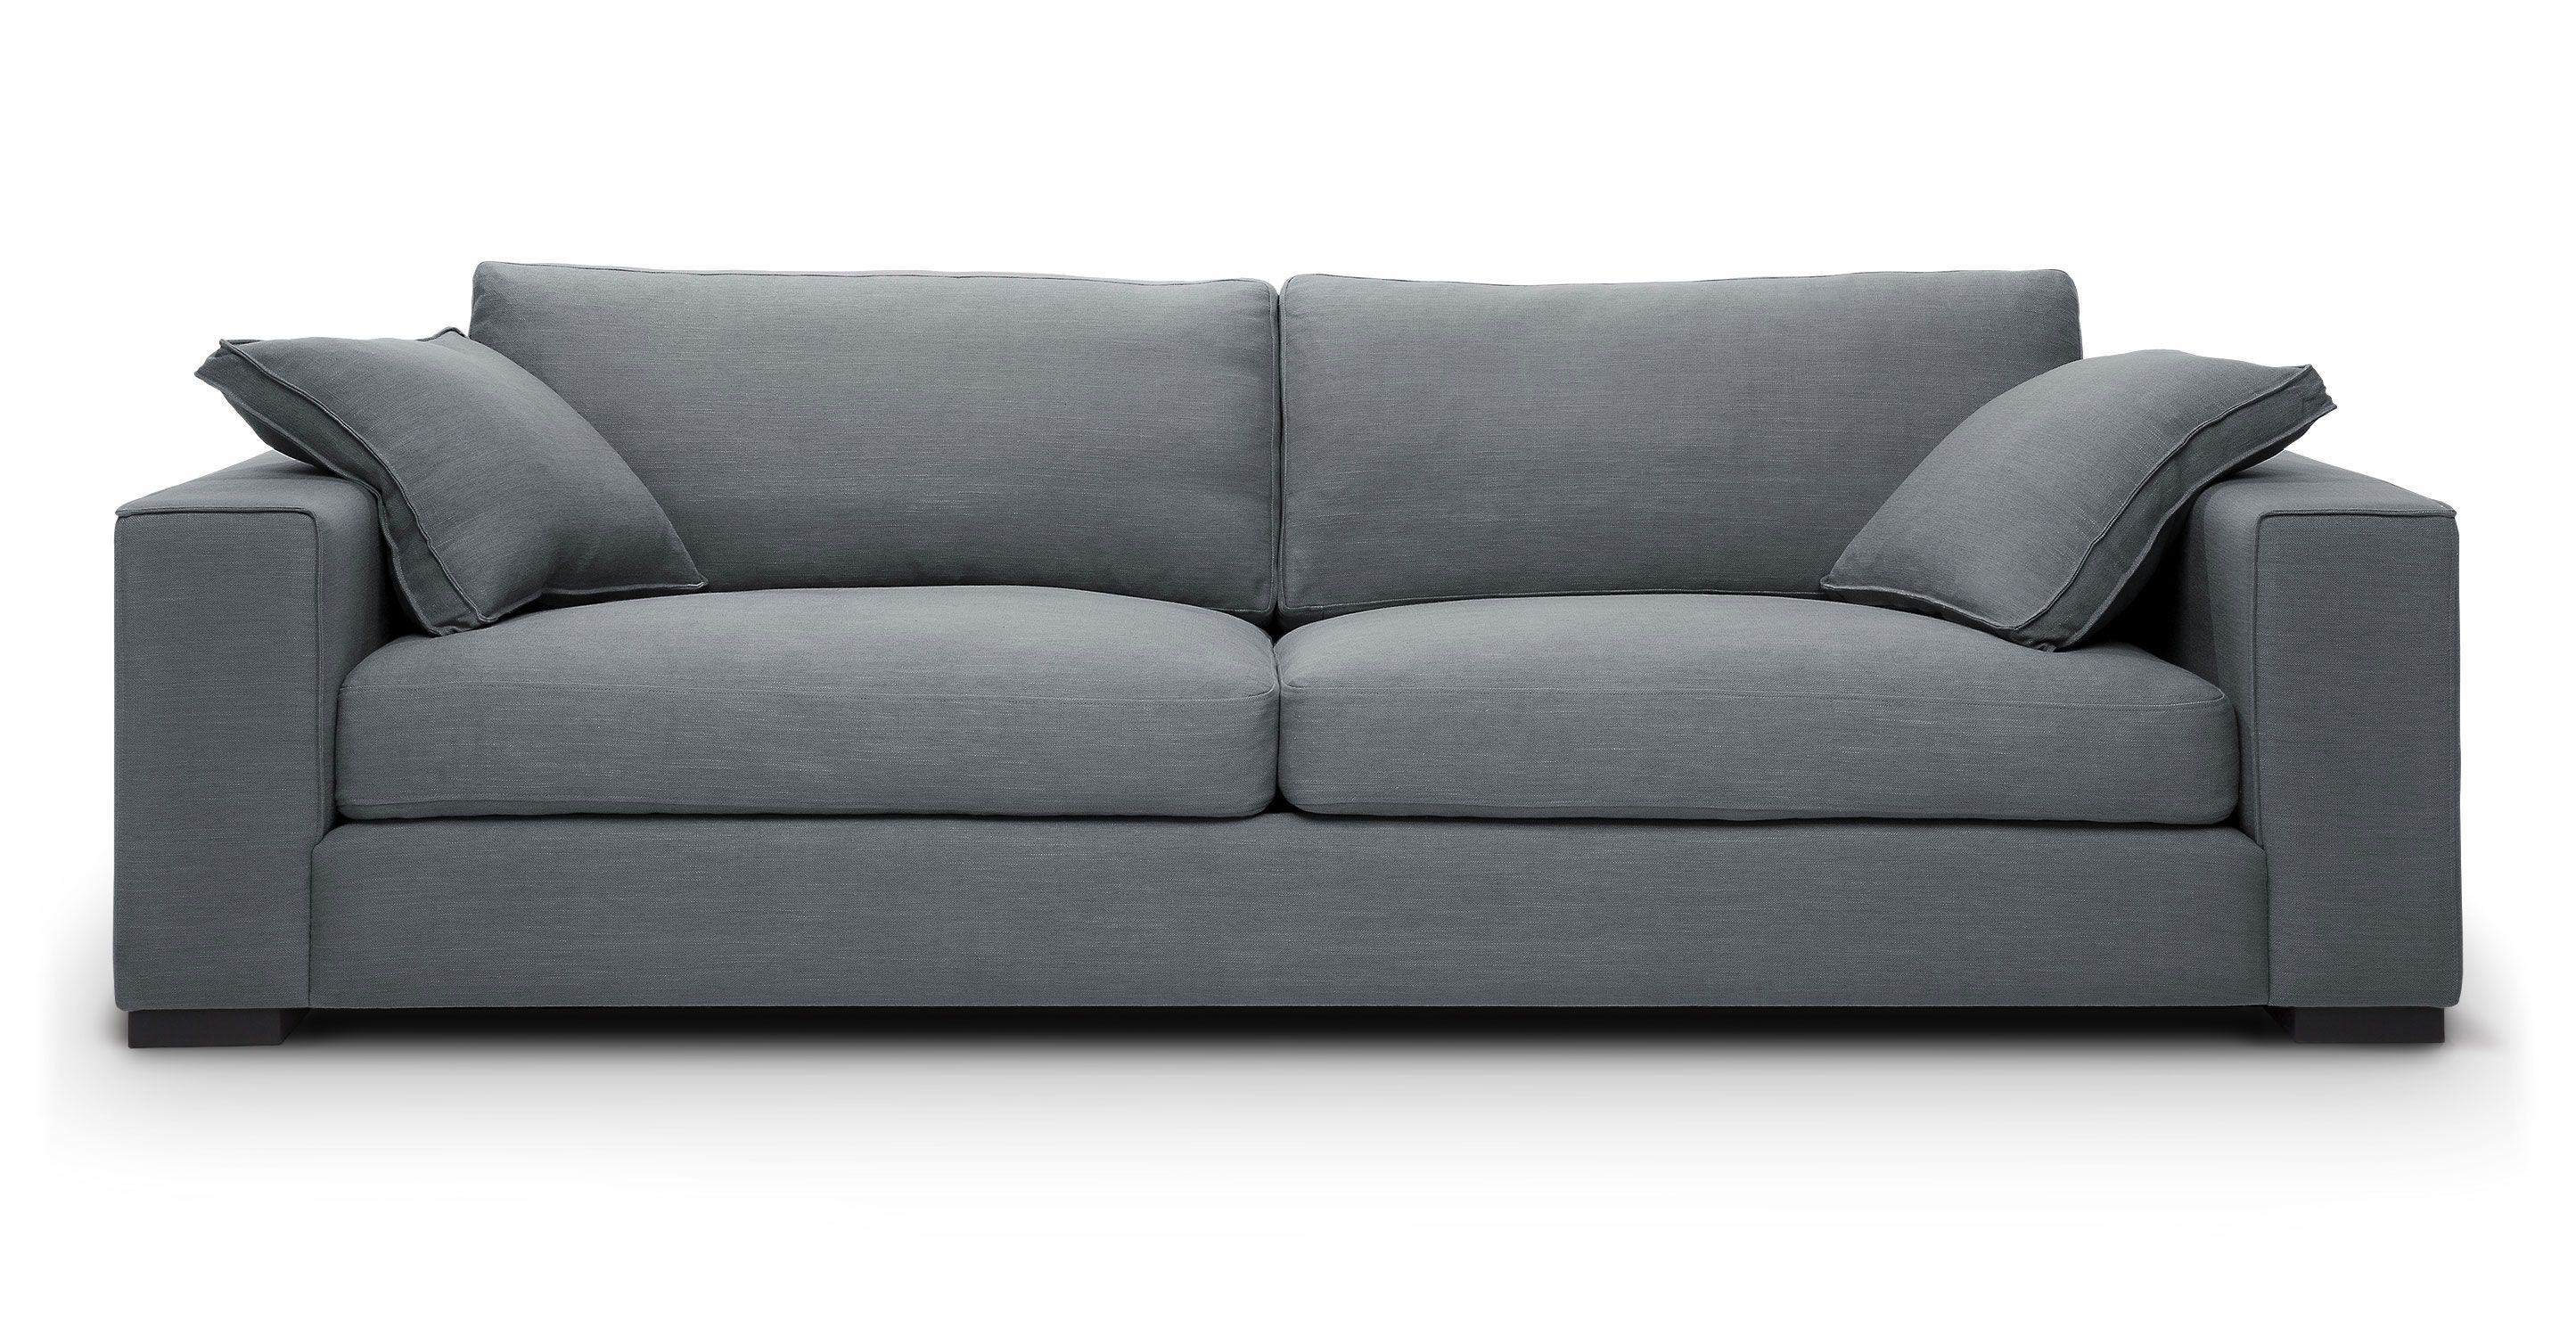 We Saw Sat Reviewed The Most Comfortable Sofas At